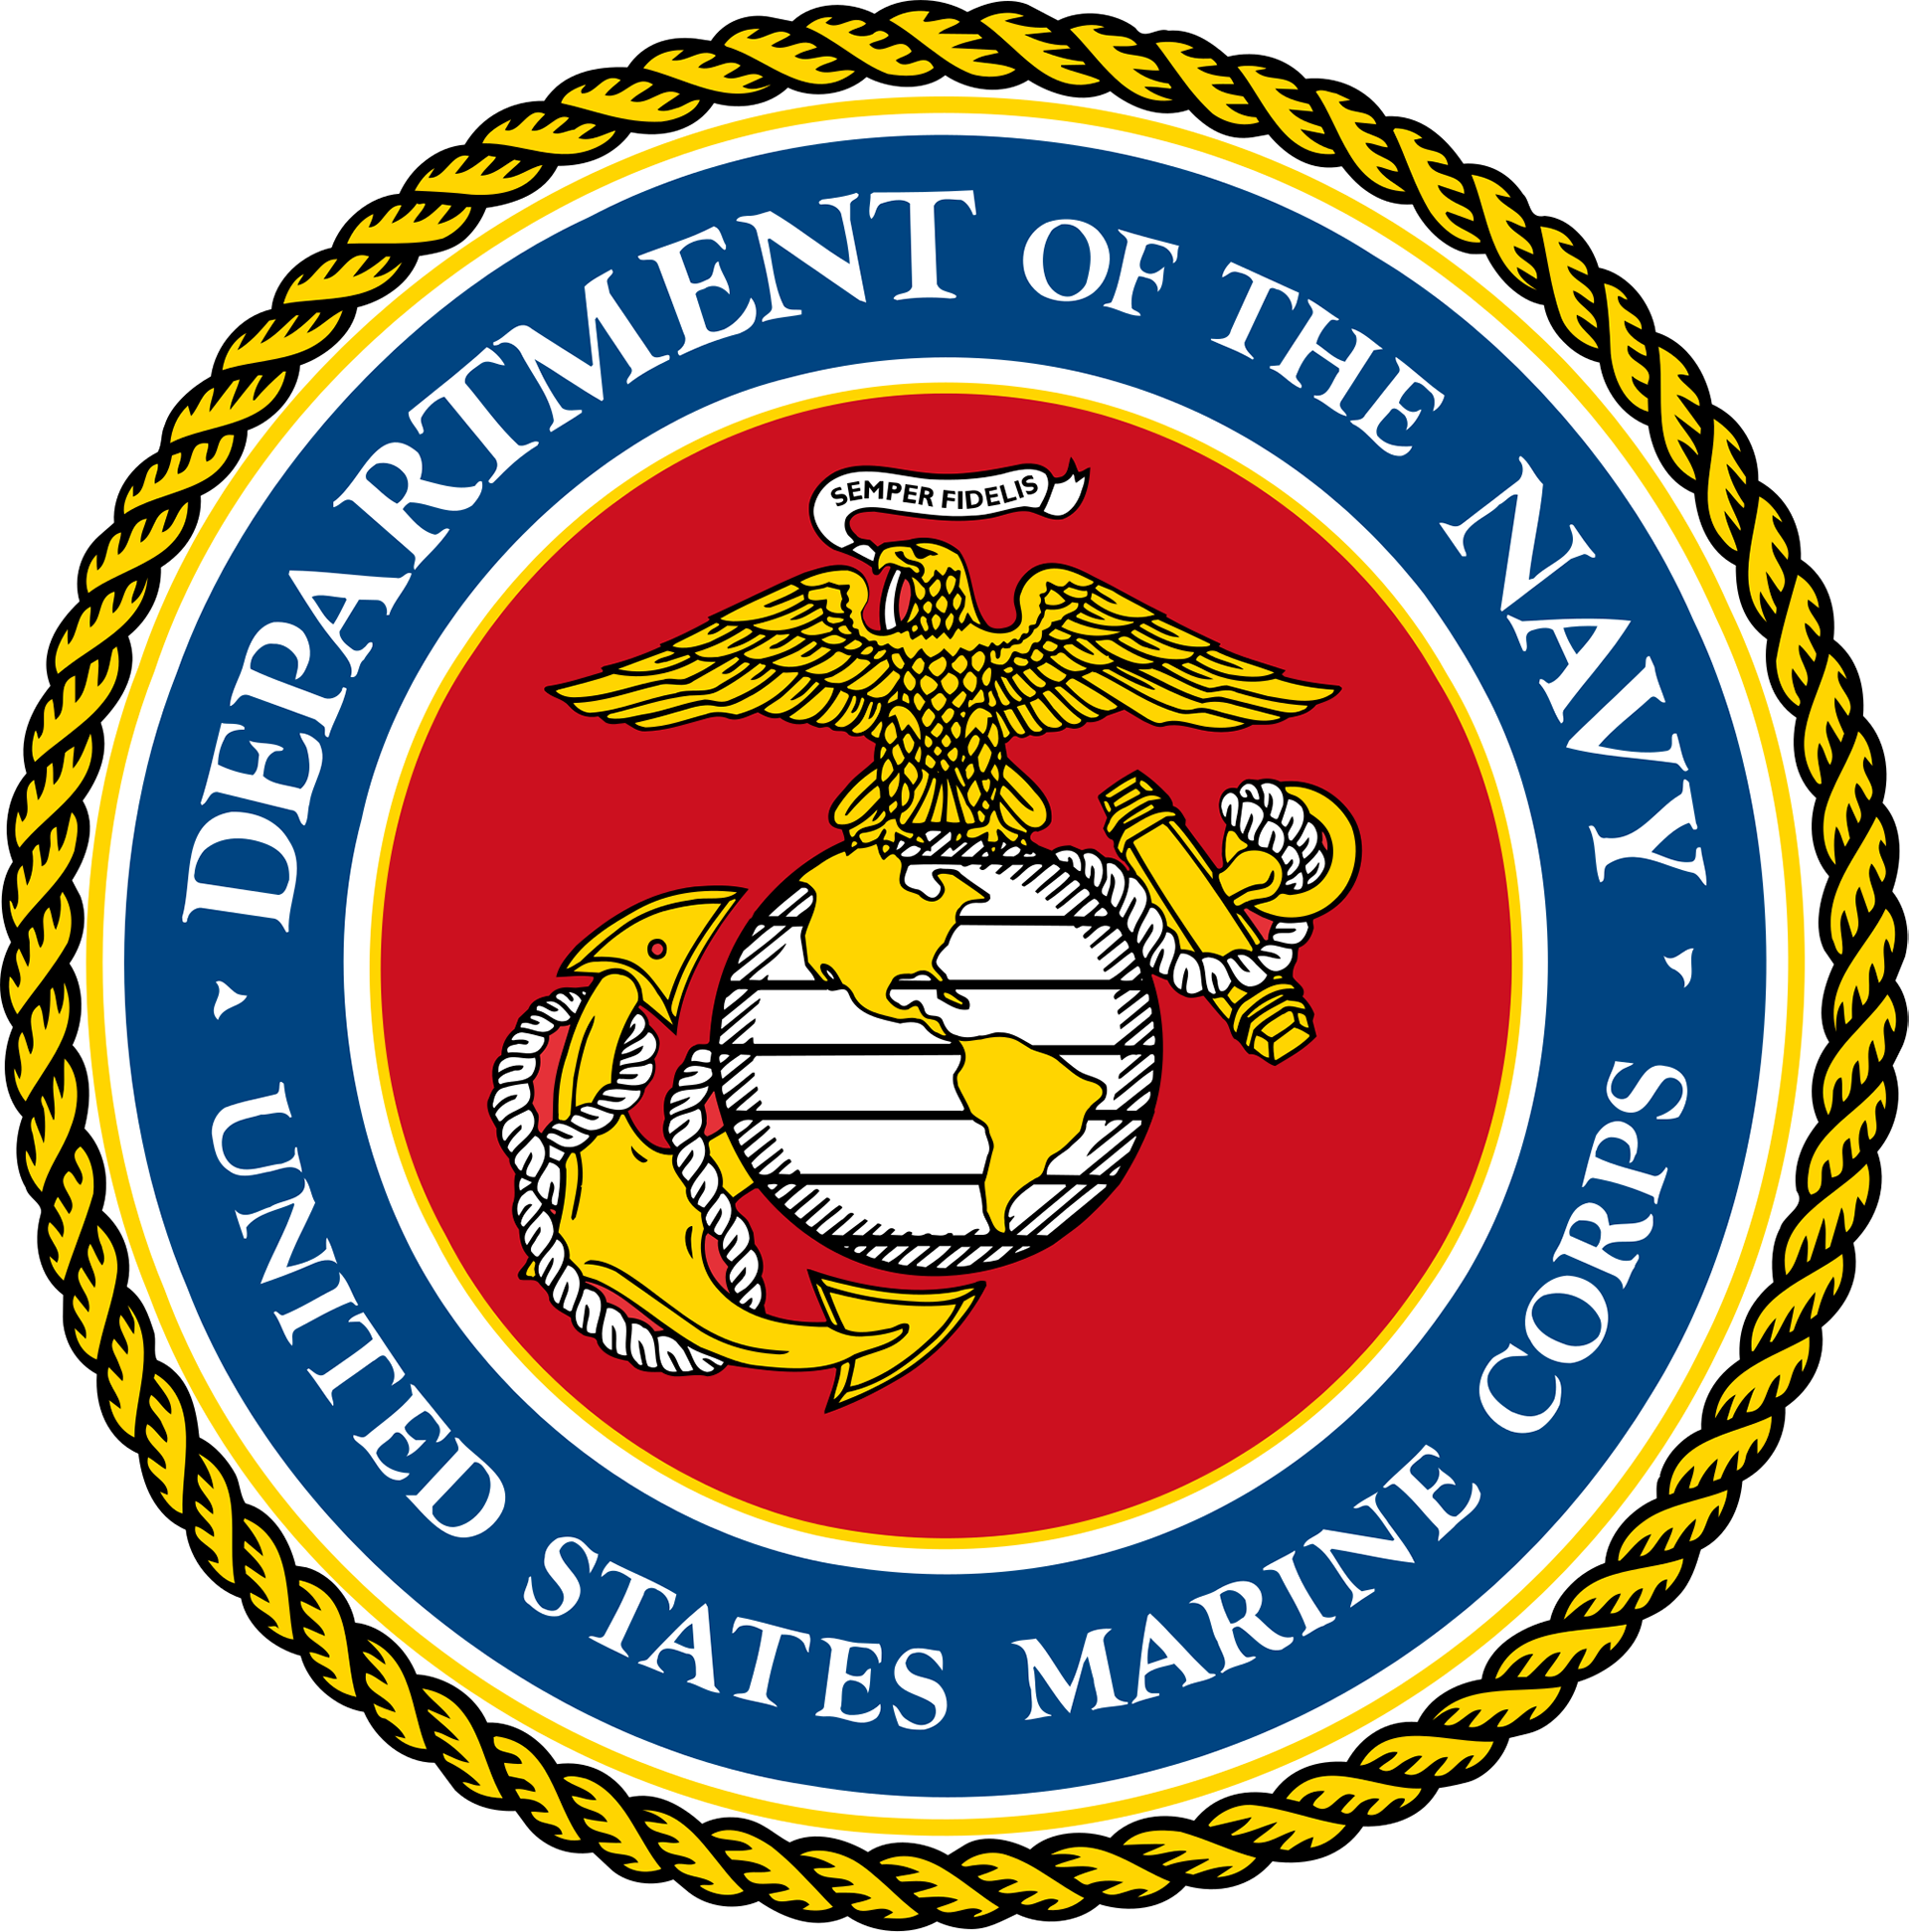 Seal of the United States Marine Corp